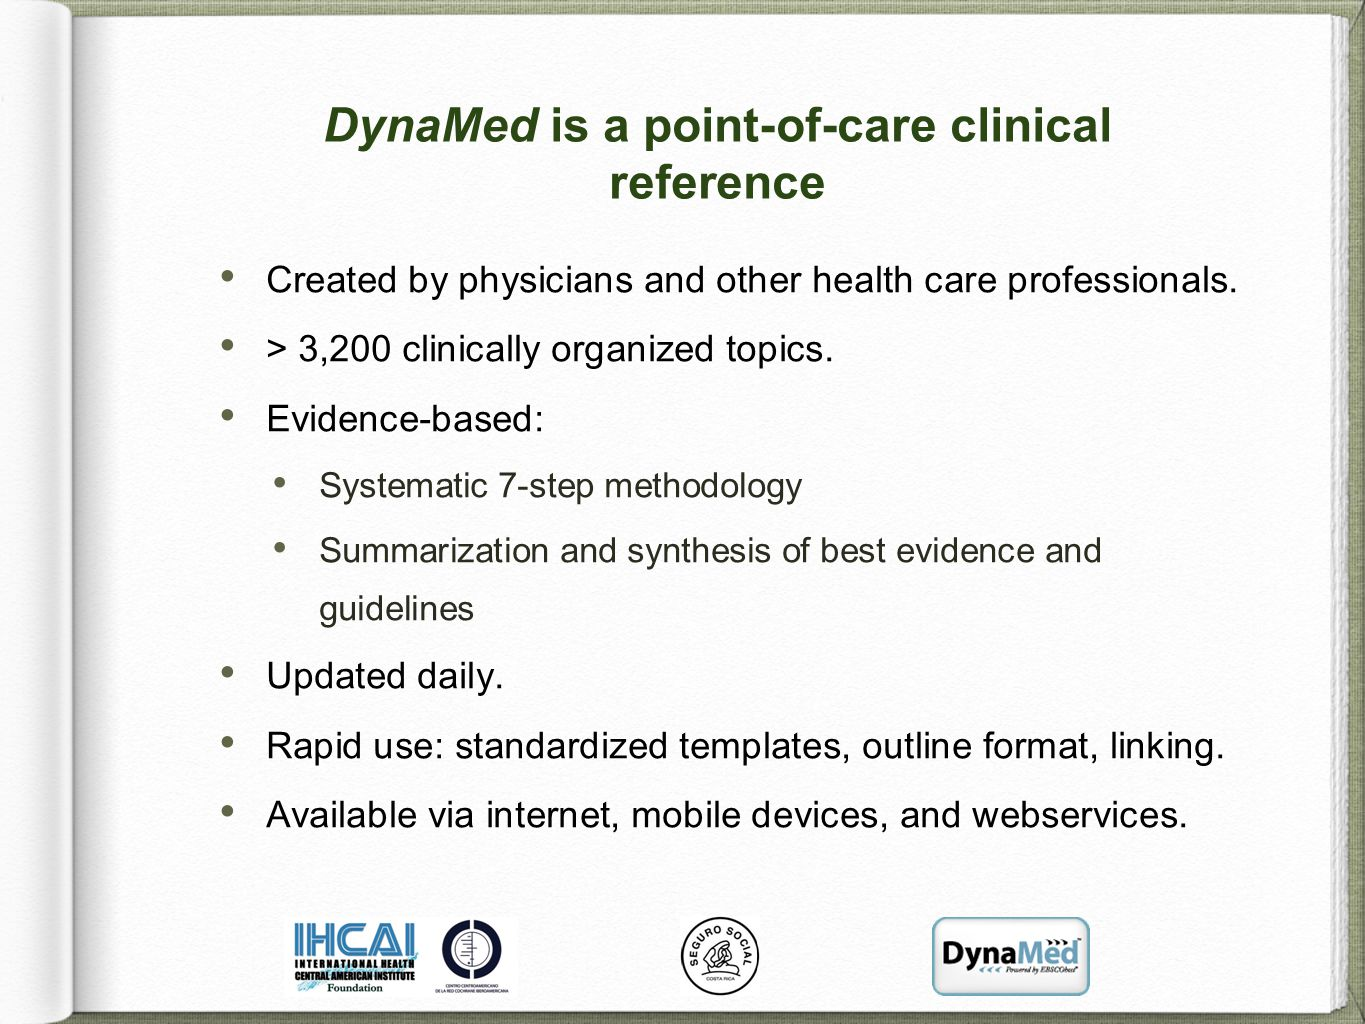 DynaMed is a point-of-care clinical reference Created by physicians and other health care professionals. > 3,200 clinically organized topics. Evidence